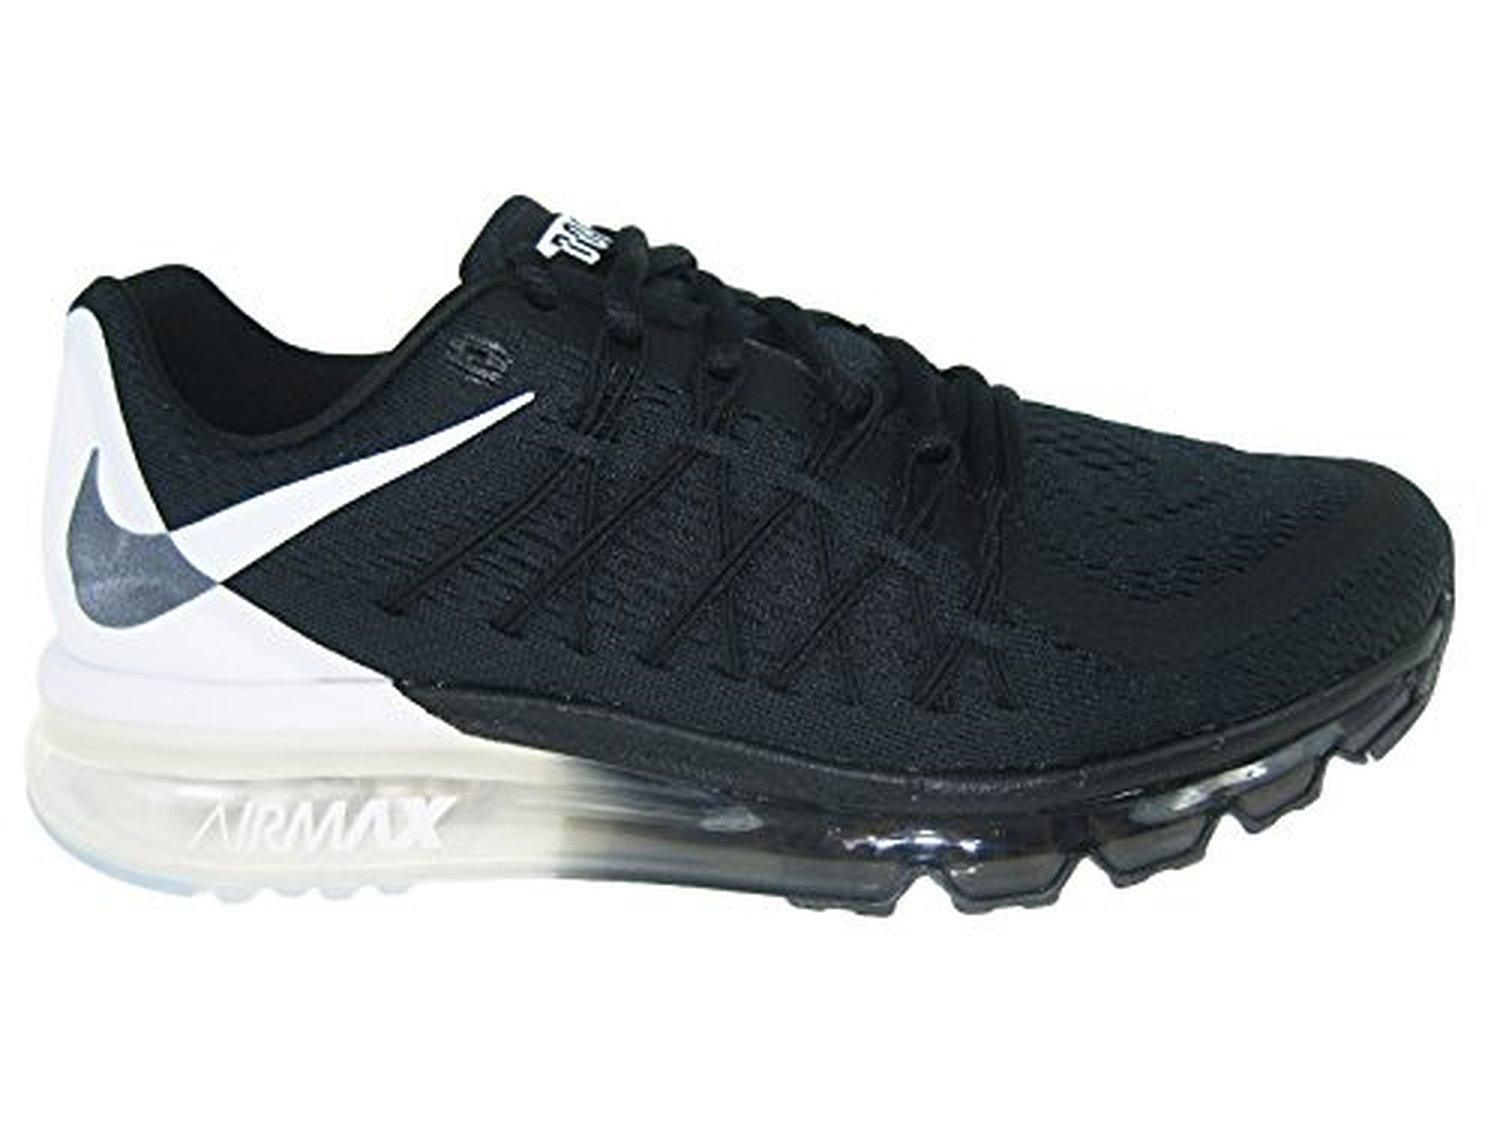 official photos 7a37e 19edc Nike Womens Air Max 2015 DOS Black White Black Nylon Running Shoes 8.5 M US  - Brought to you by Avarsha.com